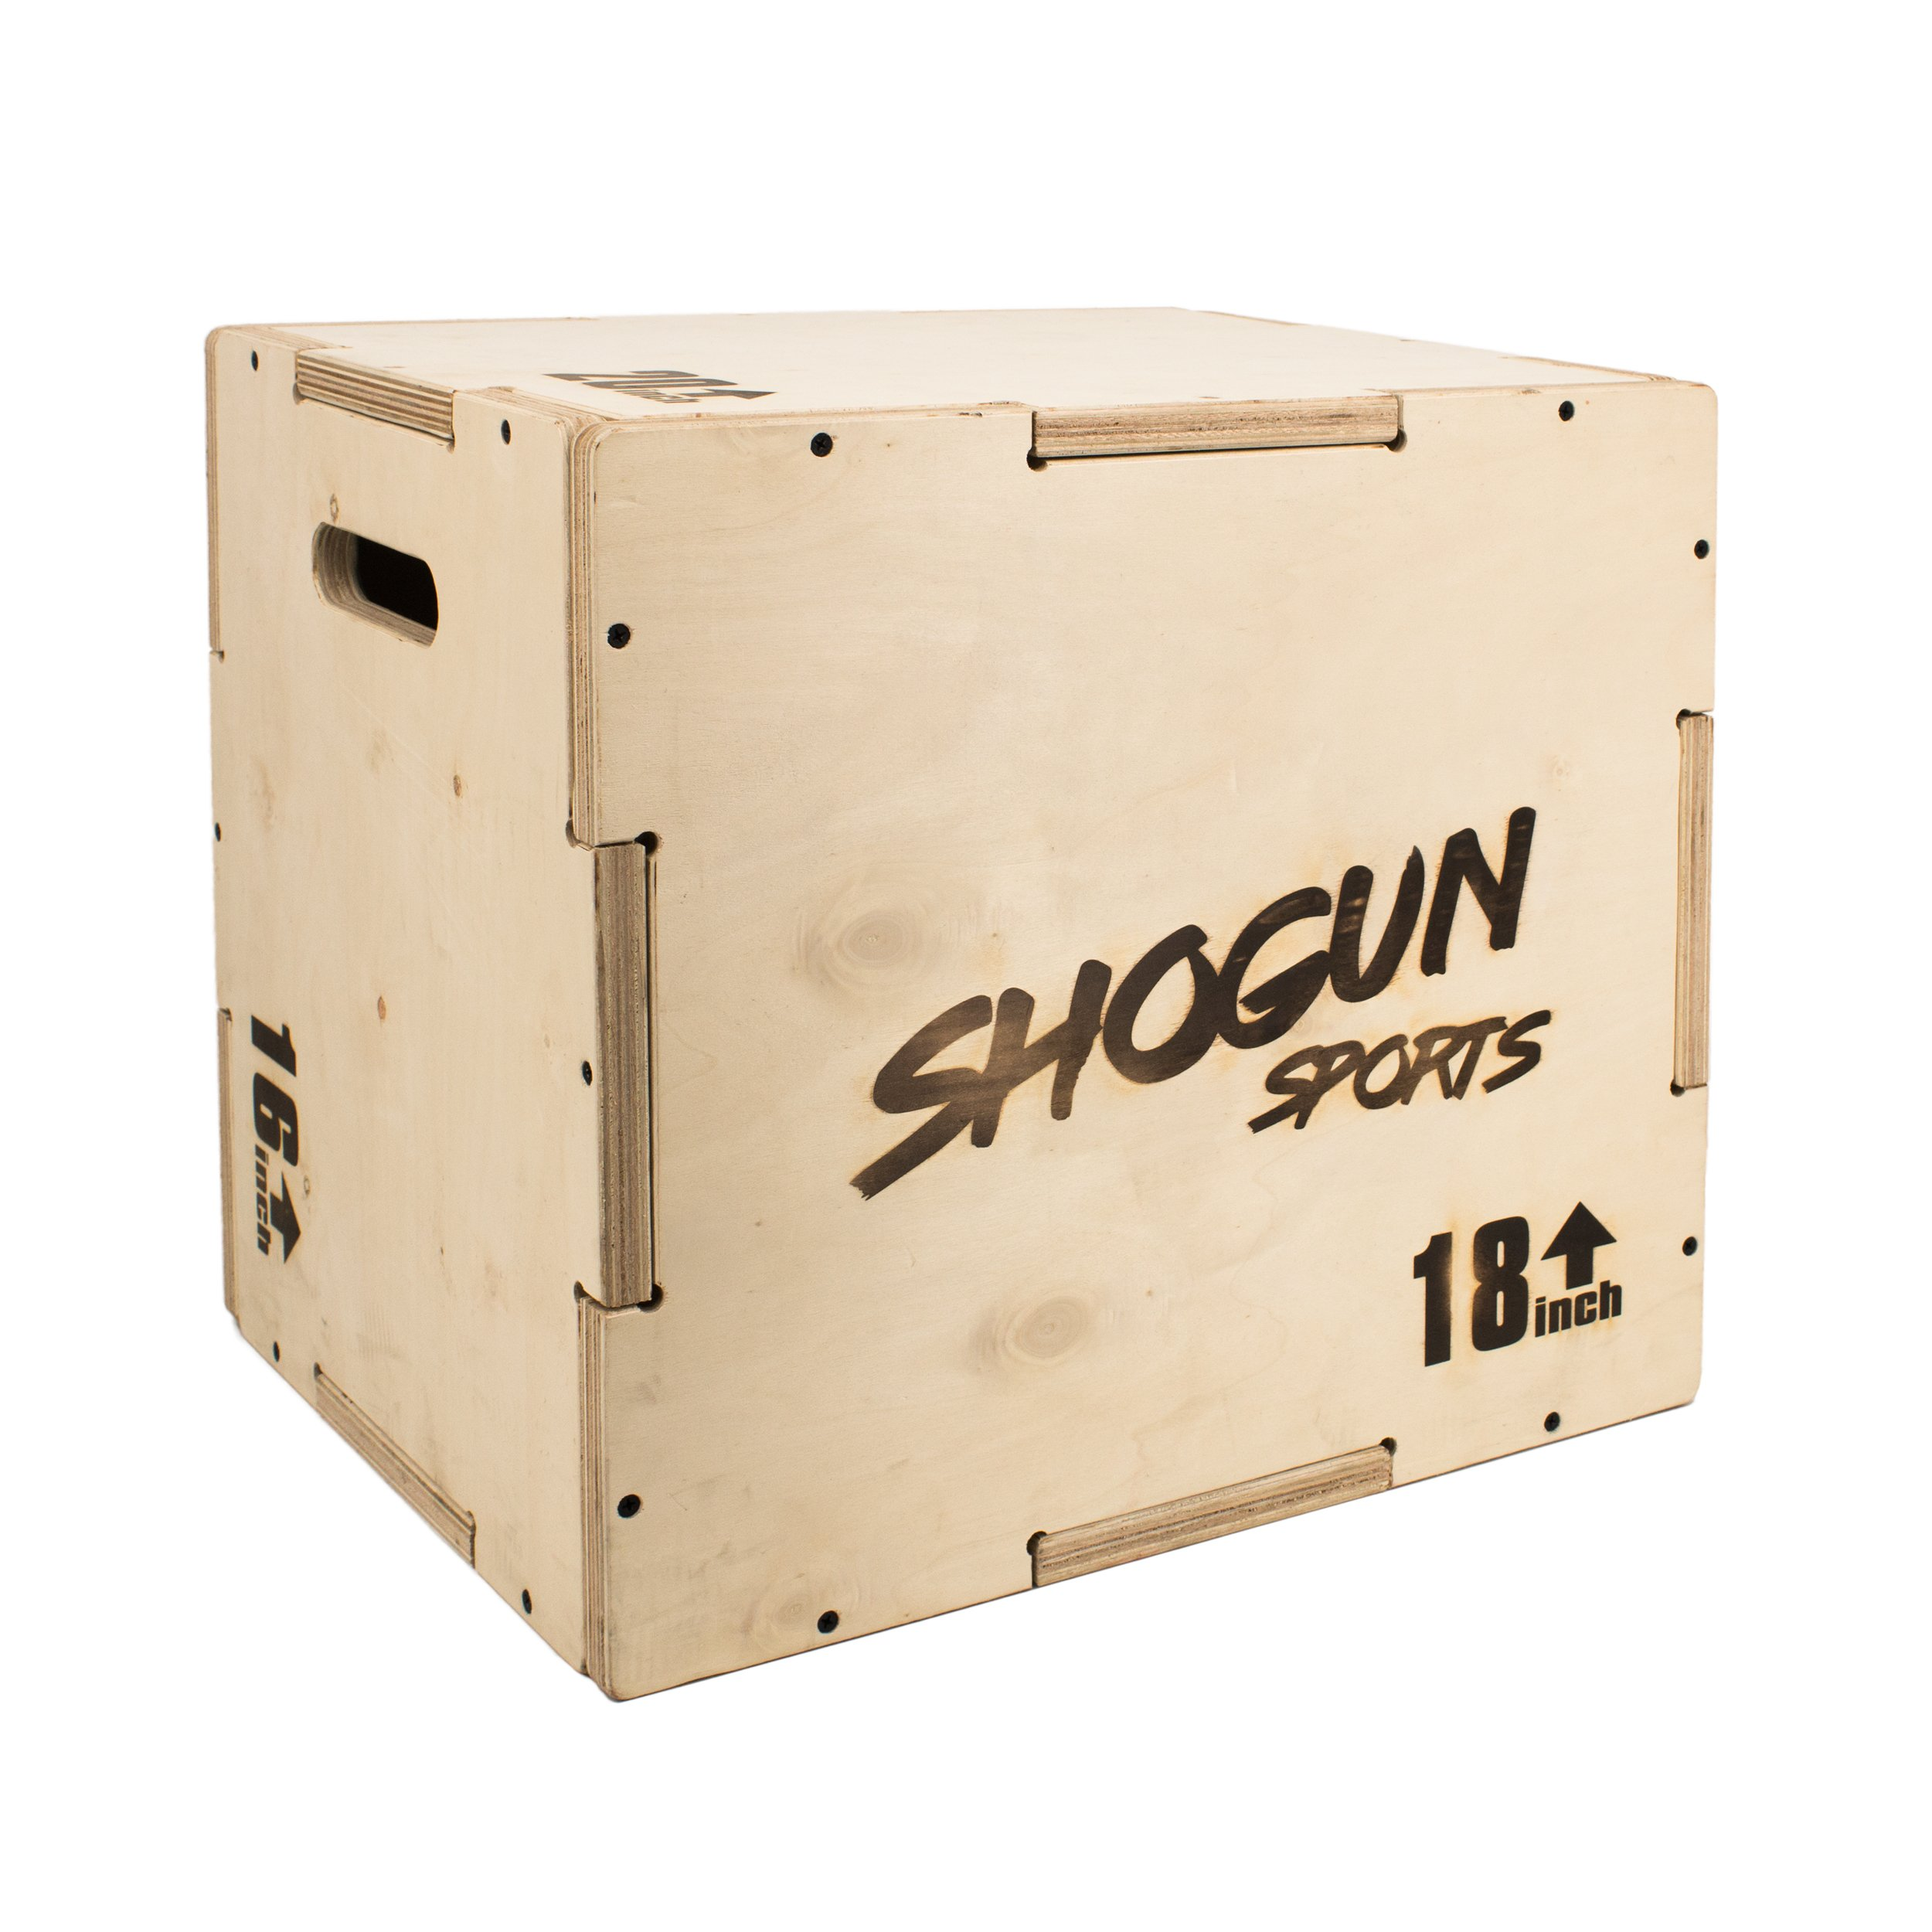 Shogun Sports 3 in 1 Wood Plyometric Box. Jump Box for Crossfit, MMA Conditioning and Strength Training. Available in 4 Sizes (30/24/20-24/20/16-20/18/16-16/14/12) (16/18/20)